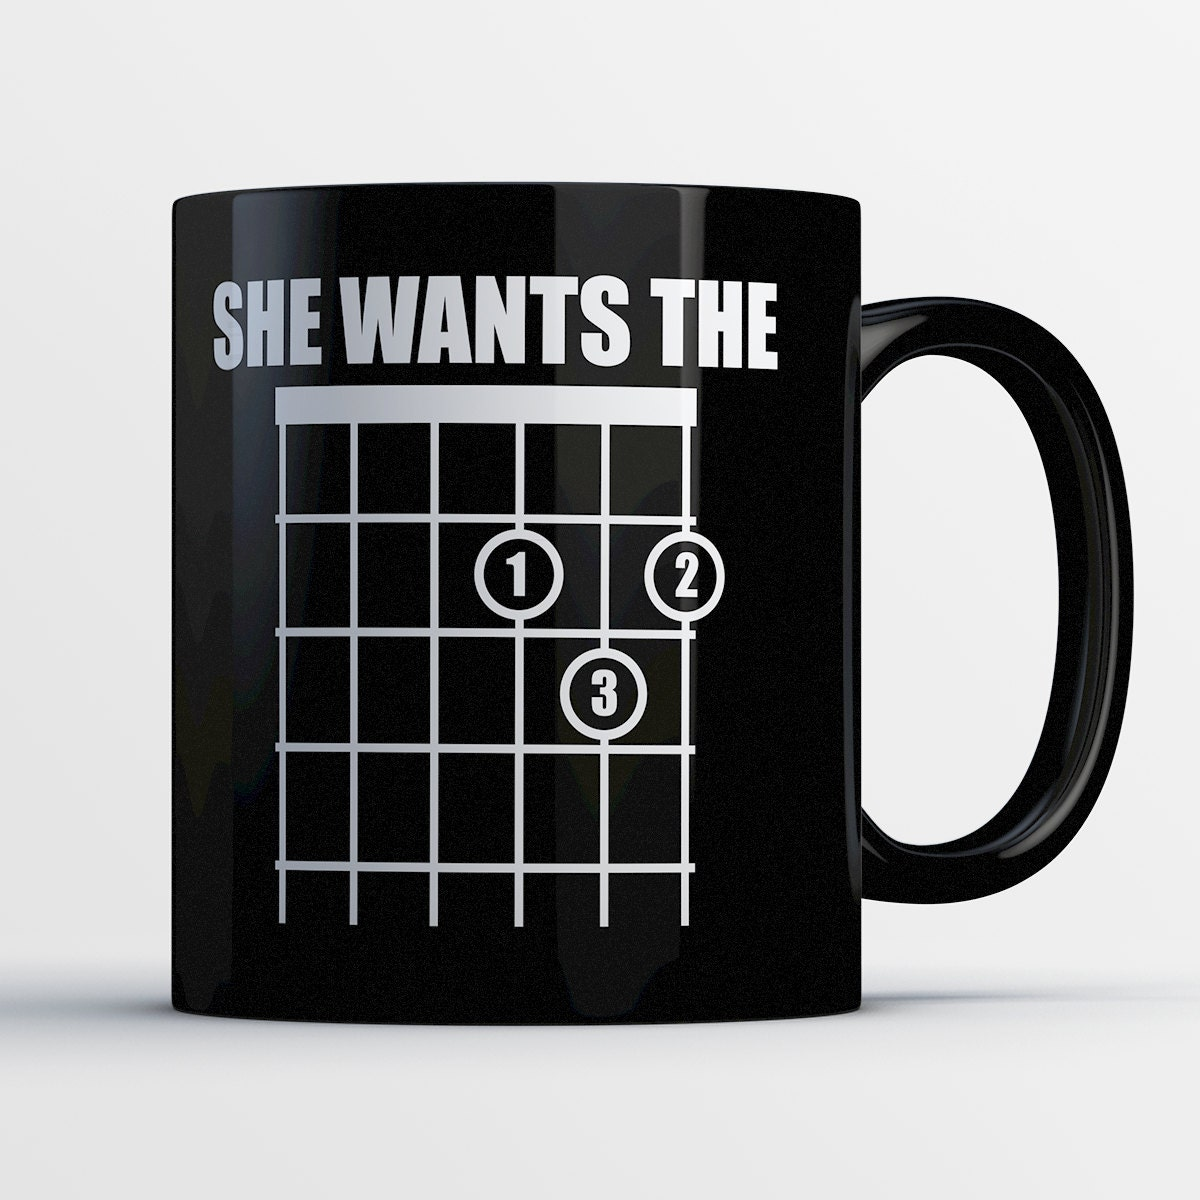 guitar gifts guitarist mug guitar lover coffee cup guitar gift ideas music gift guitar art she wants the d